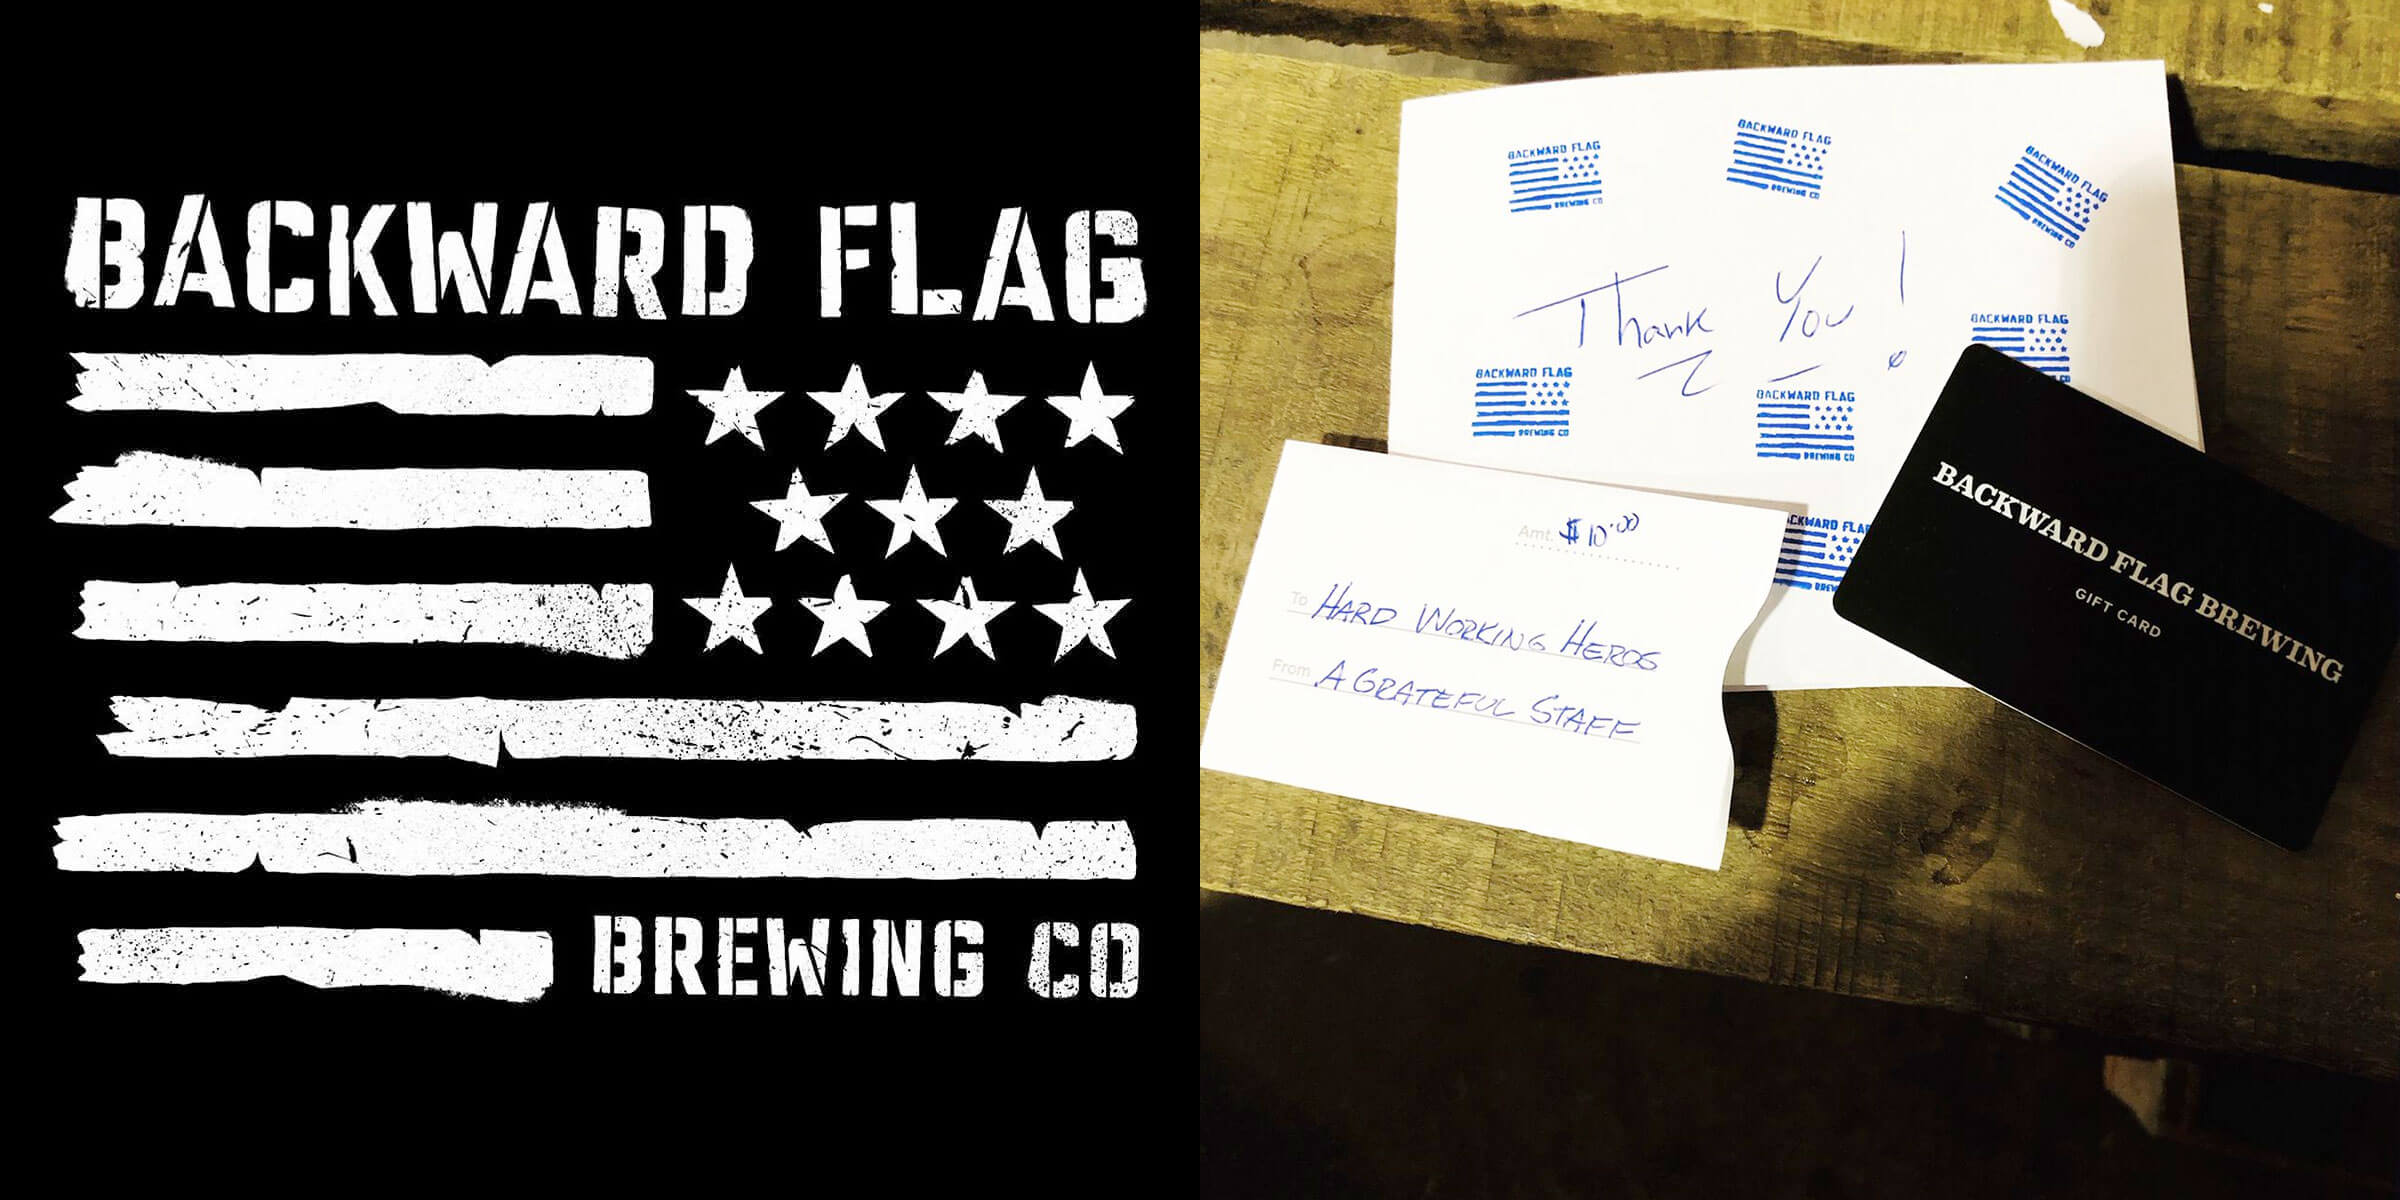 One of the gift cards donated by the Backward Flag Brewing Co. to the ER nurses at Southern Ocean Medical Center.